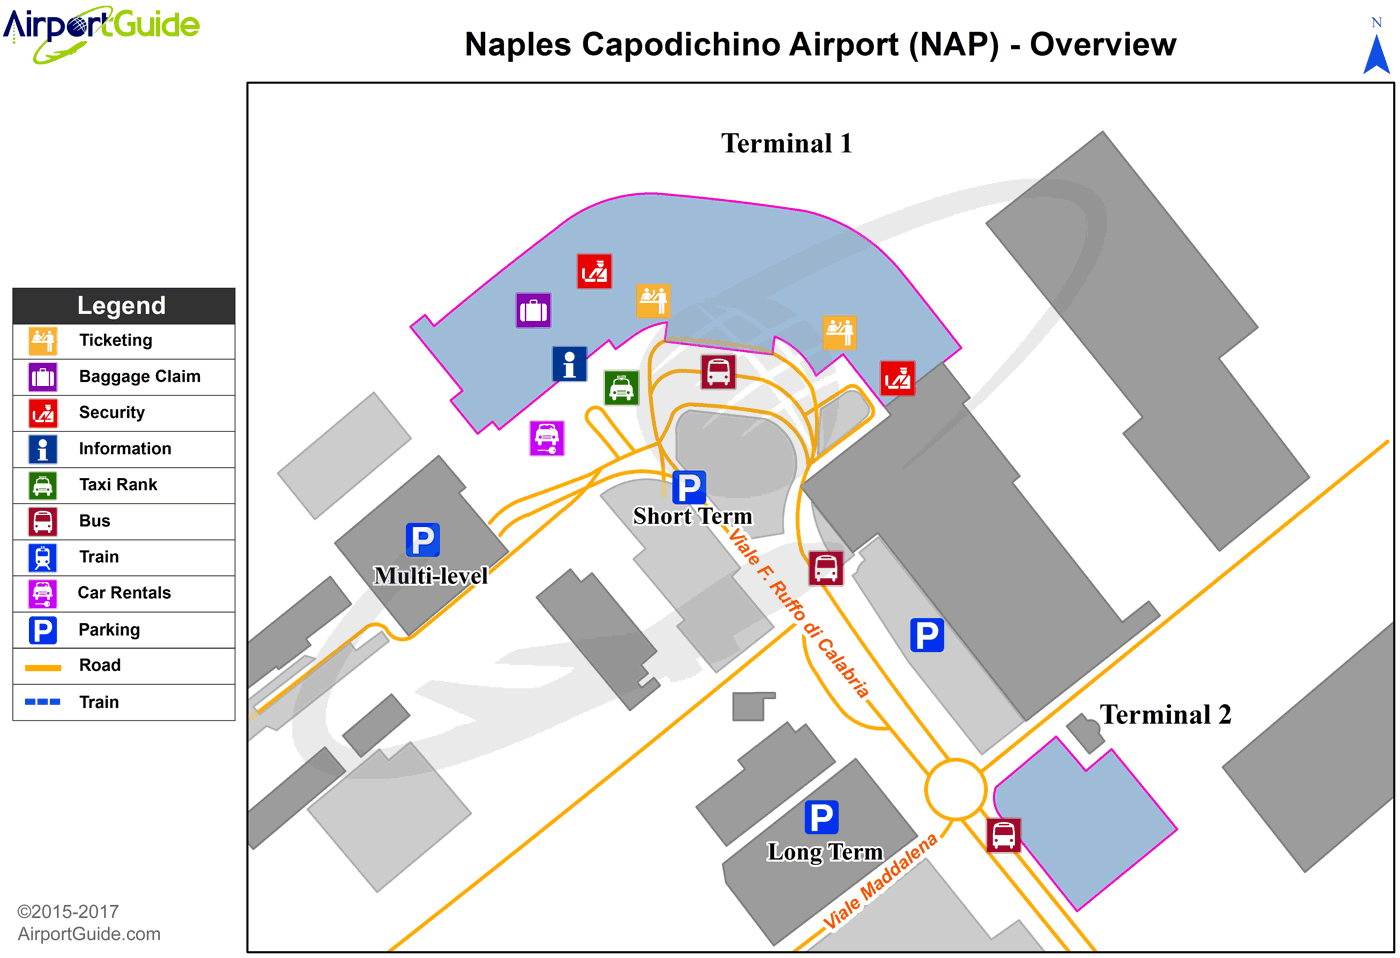 Nápoli - Naples International Airport (NAP) Airport Terminal Map - Overview